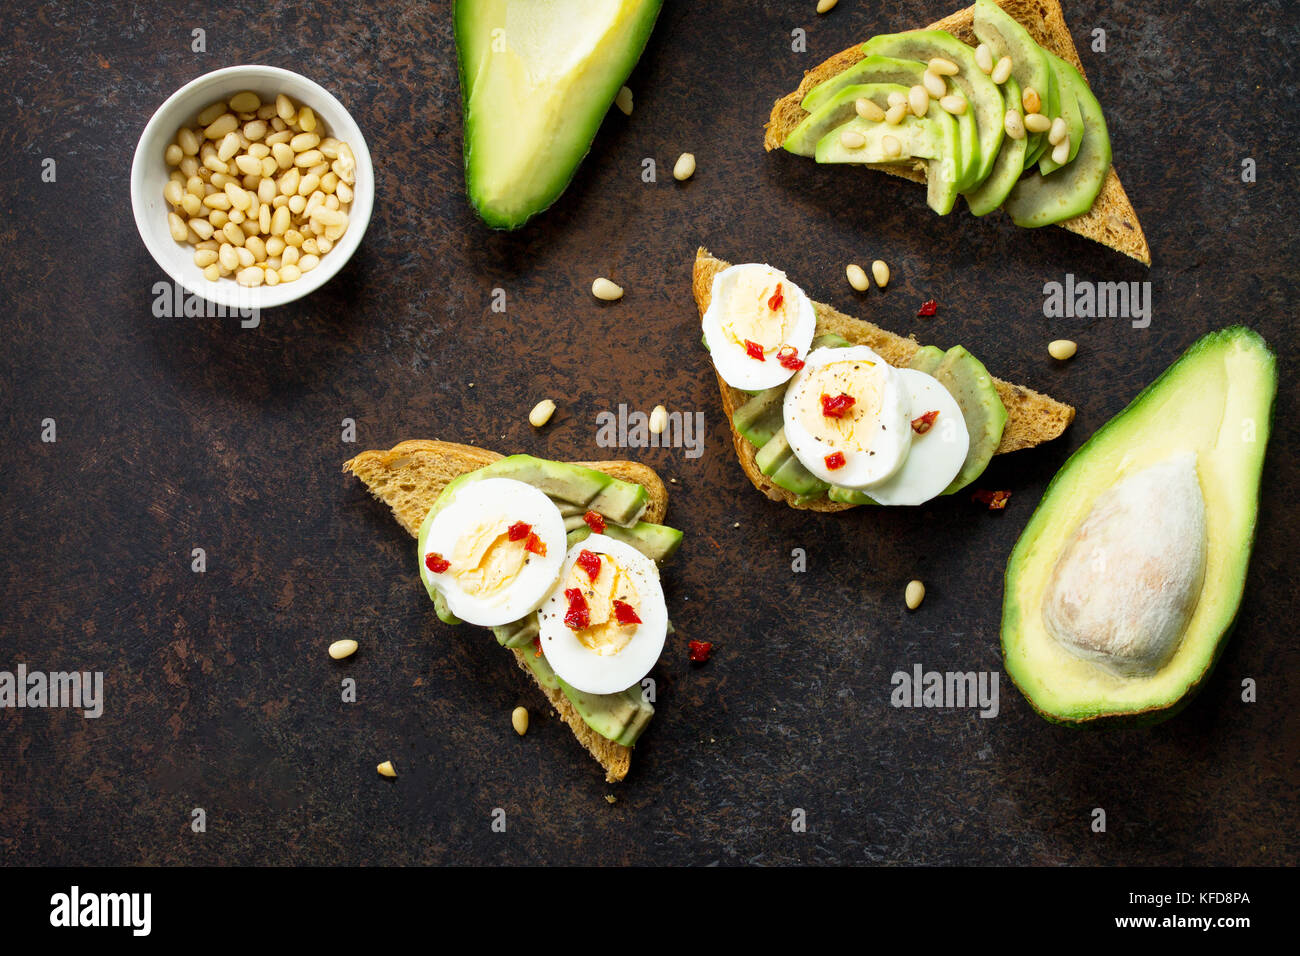 Sandwich avocado with fresh sliced avocado, egg poached and spices on a dark slate or stone background. Copy space. Stock Photo